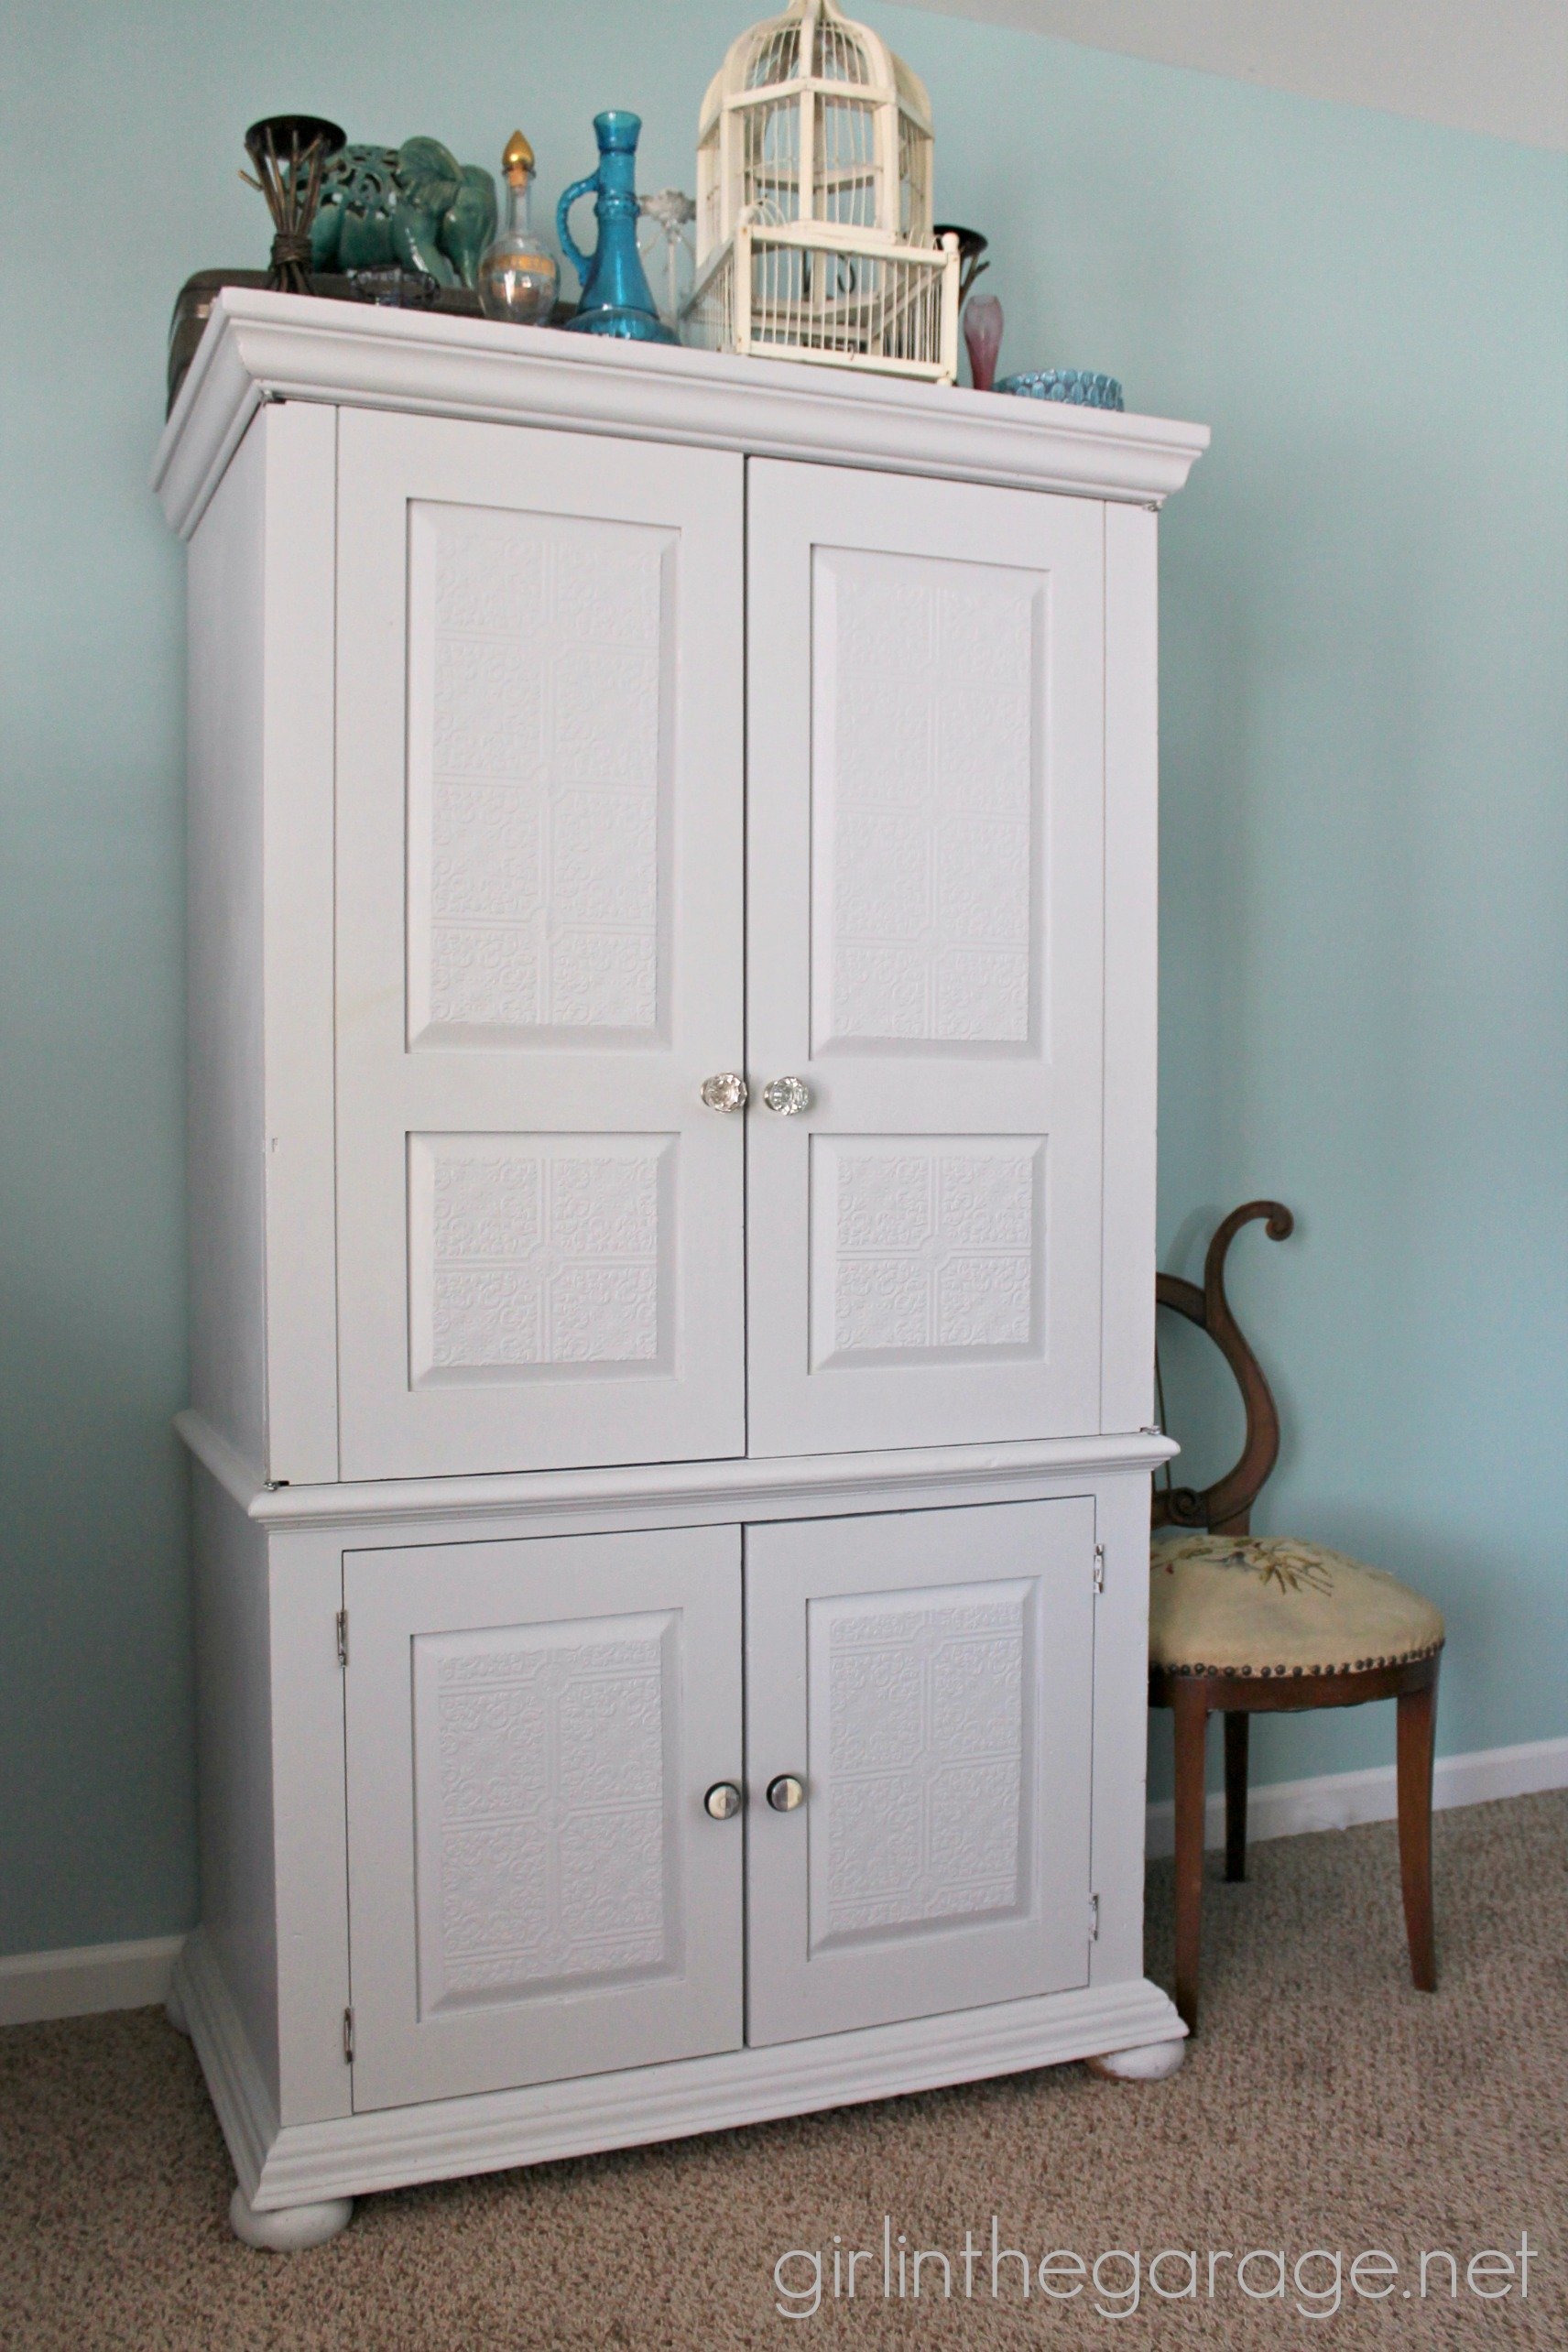 Wallpapered Armoire Makeover - Girl in the Garage